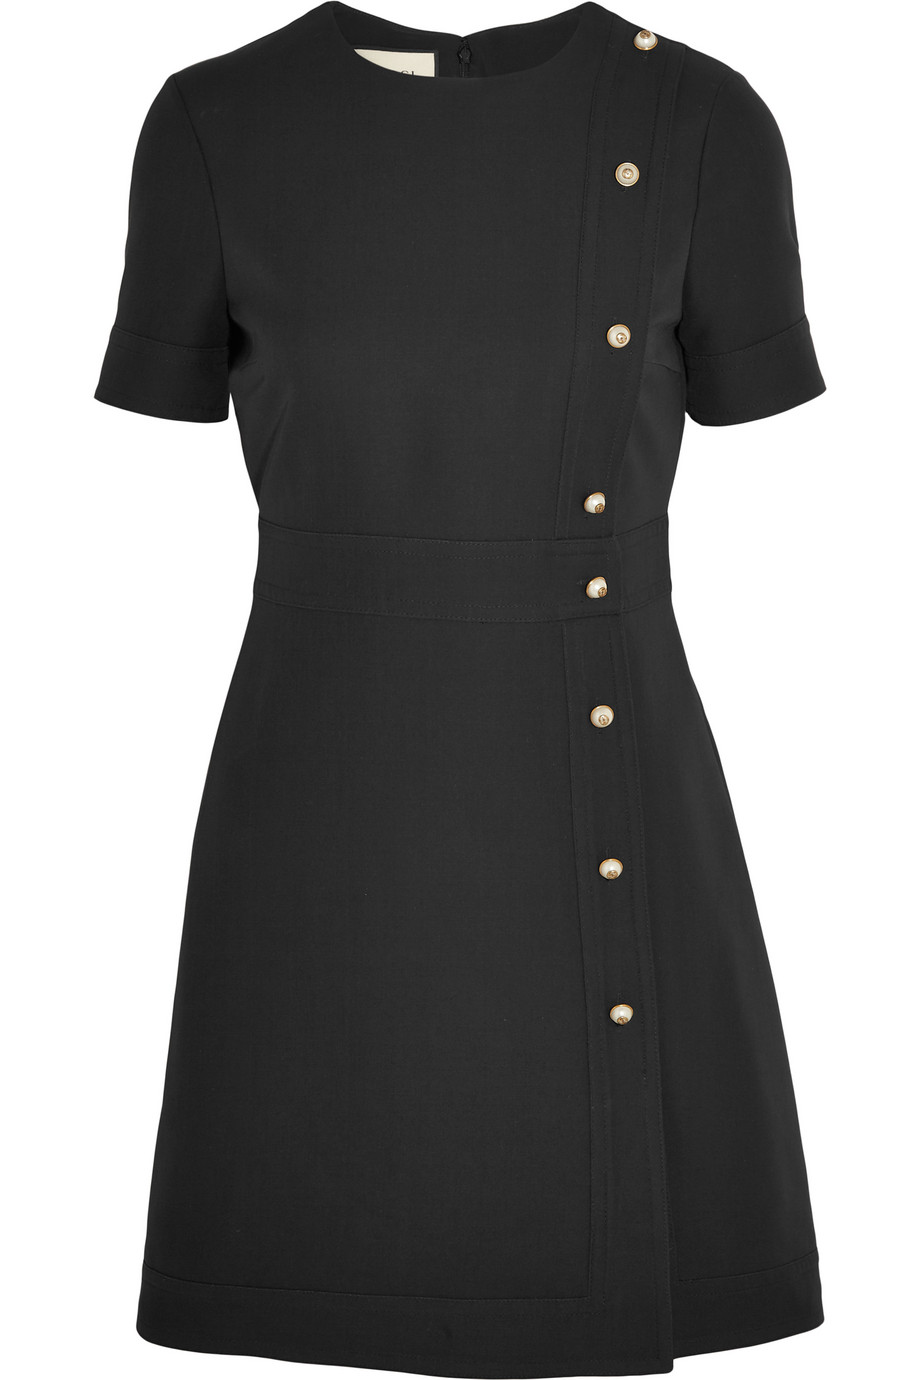 Gucci Faux Pearl-Embellished Wool and Silk-Blend Mini Dress, Size: 44